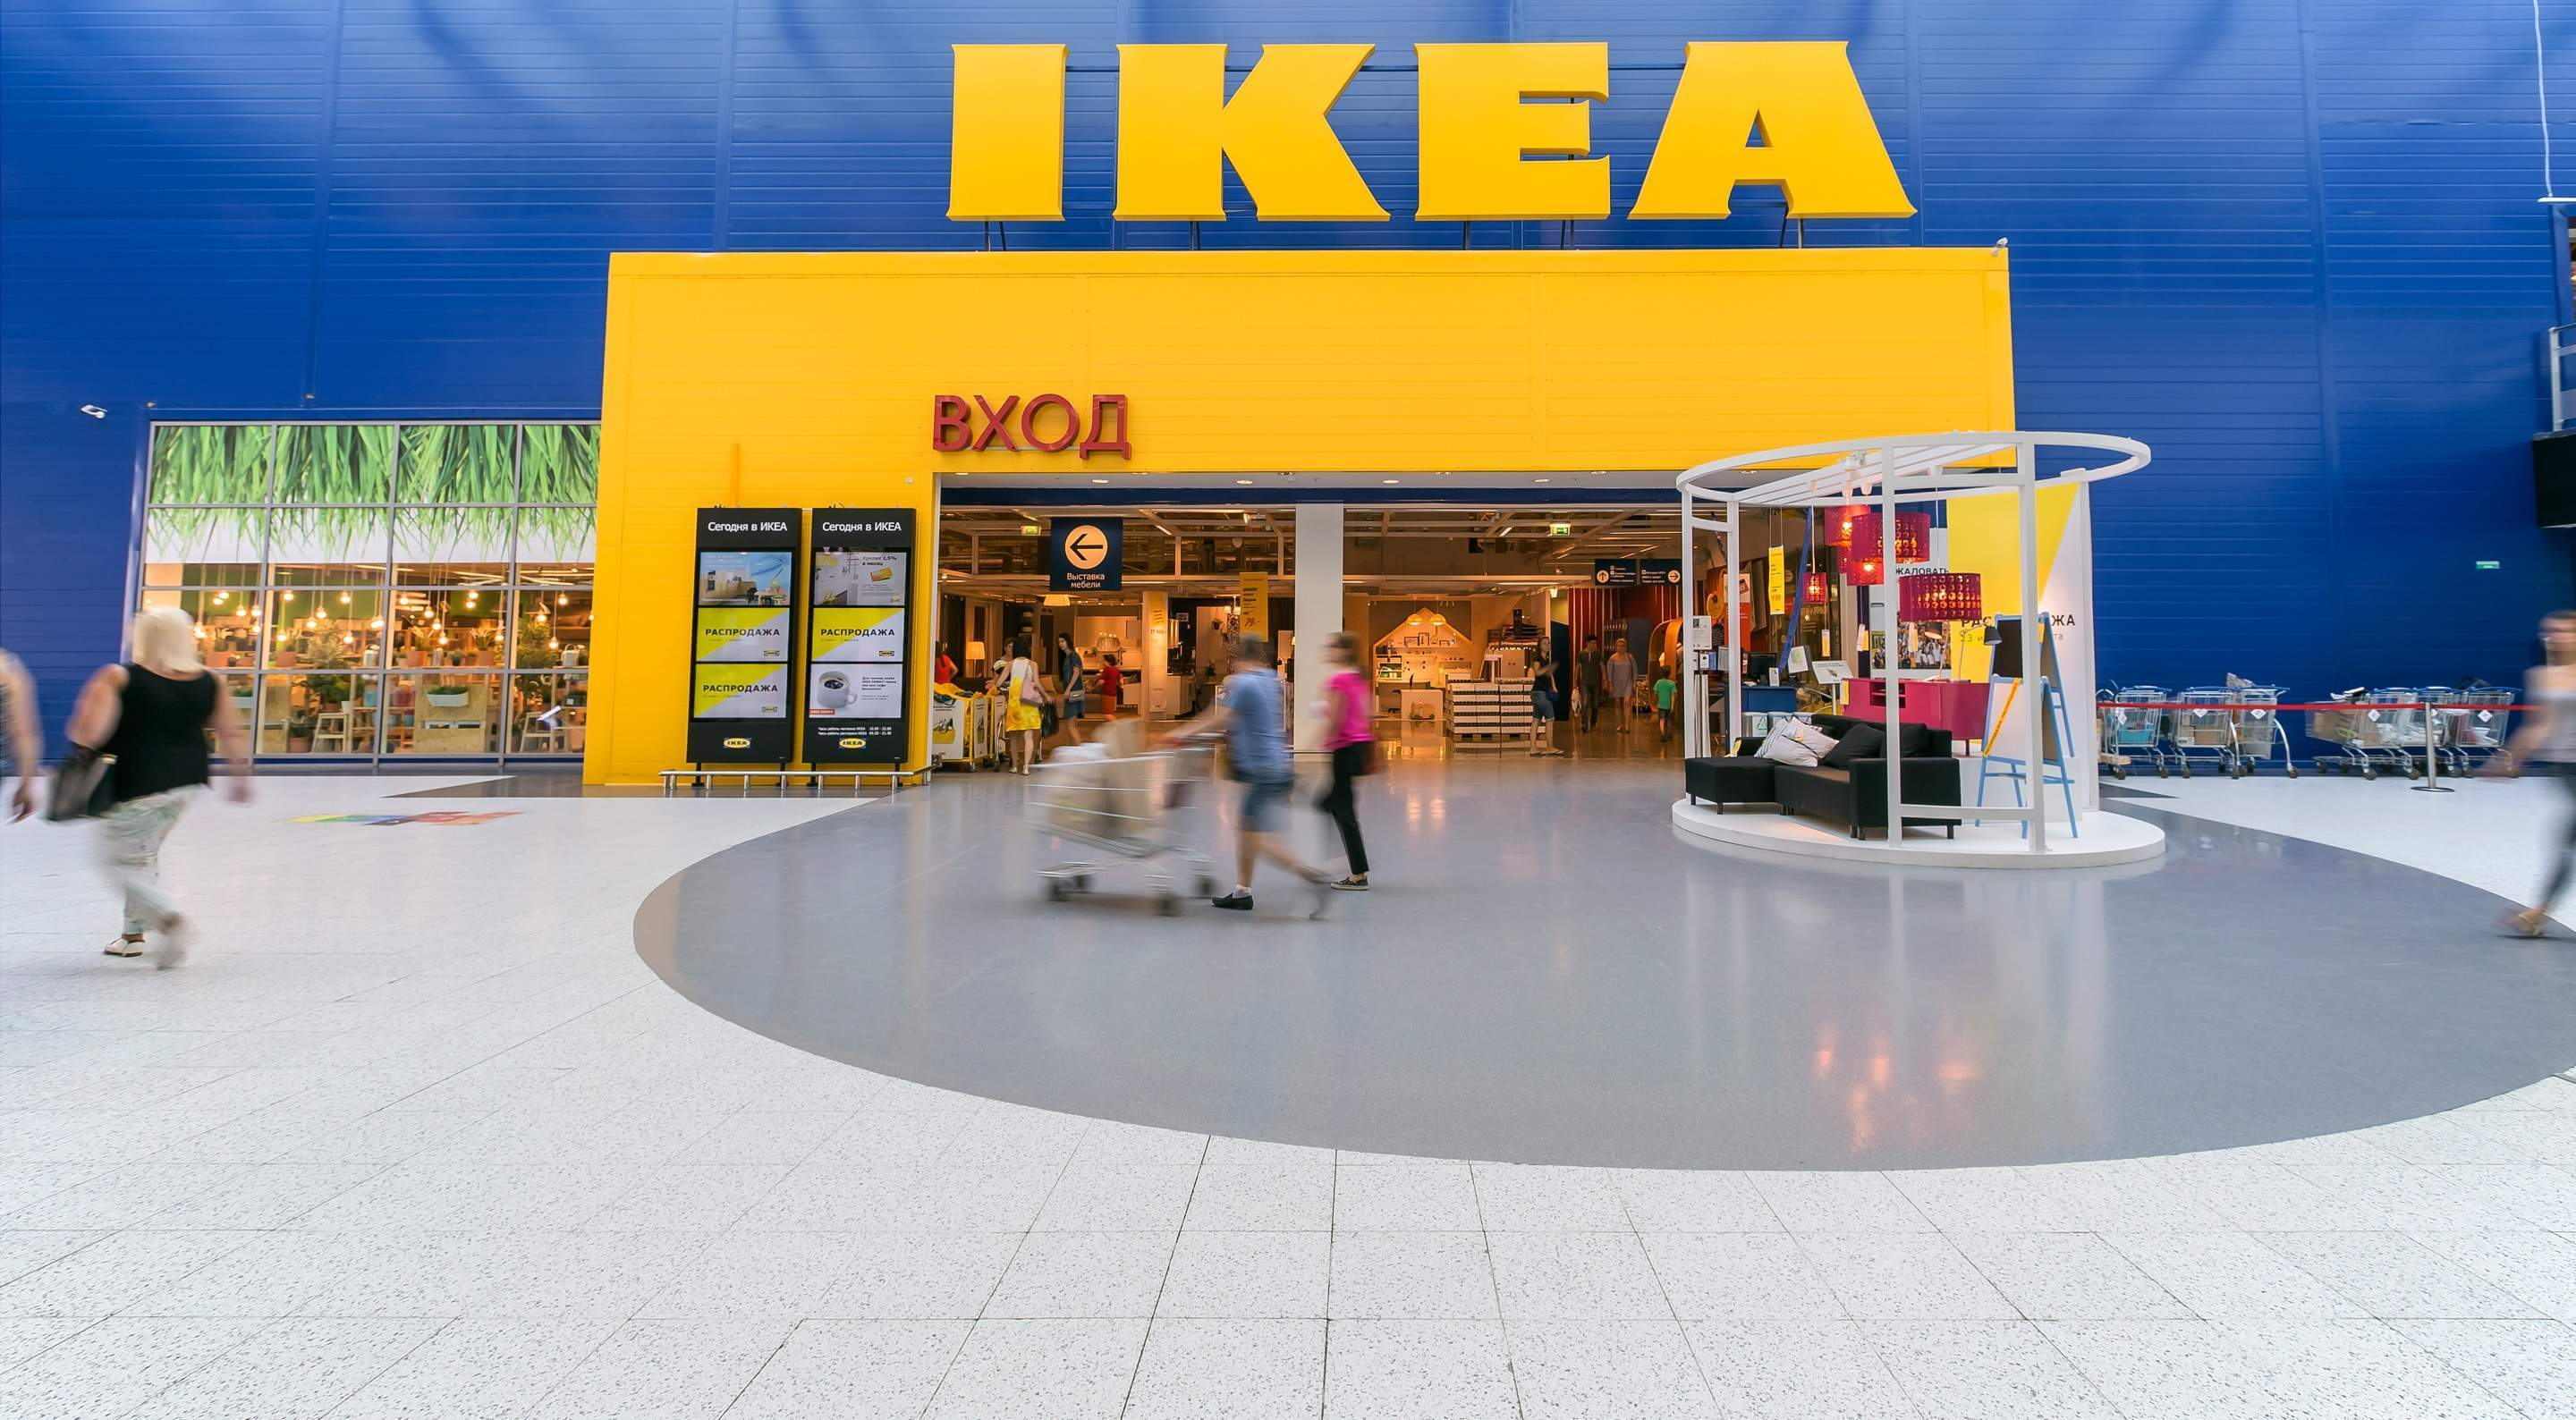 From selling on Amazon to investing in AR, Ikea is on a digital mission